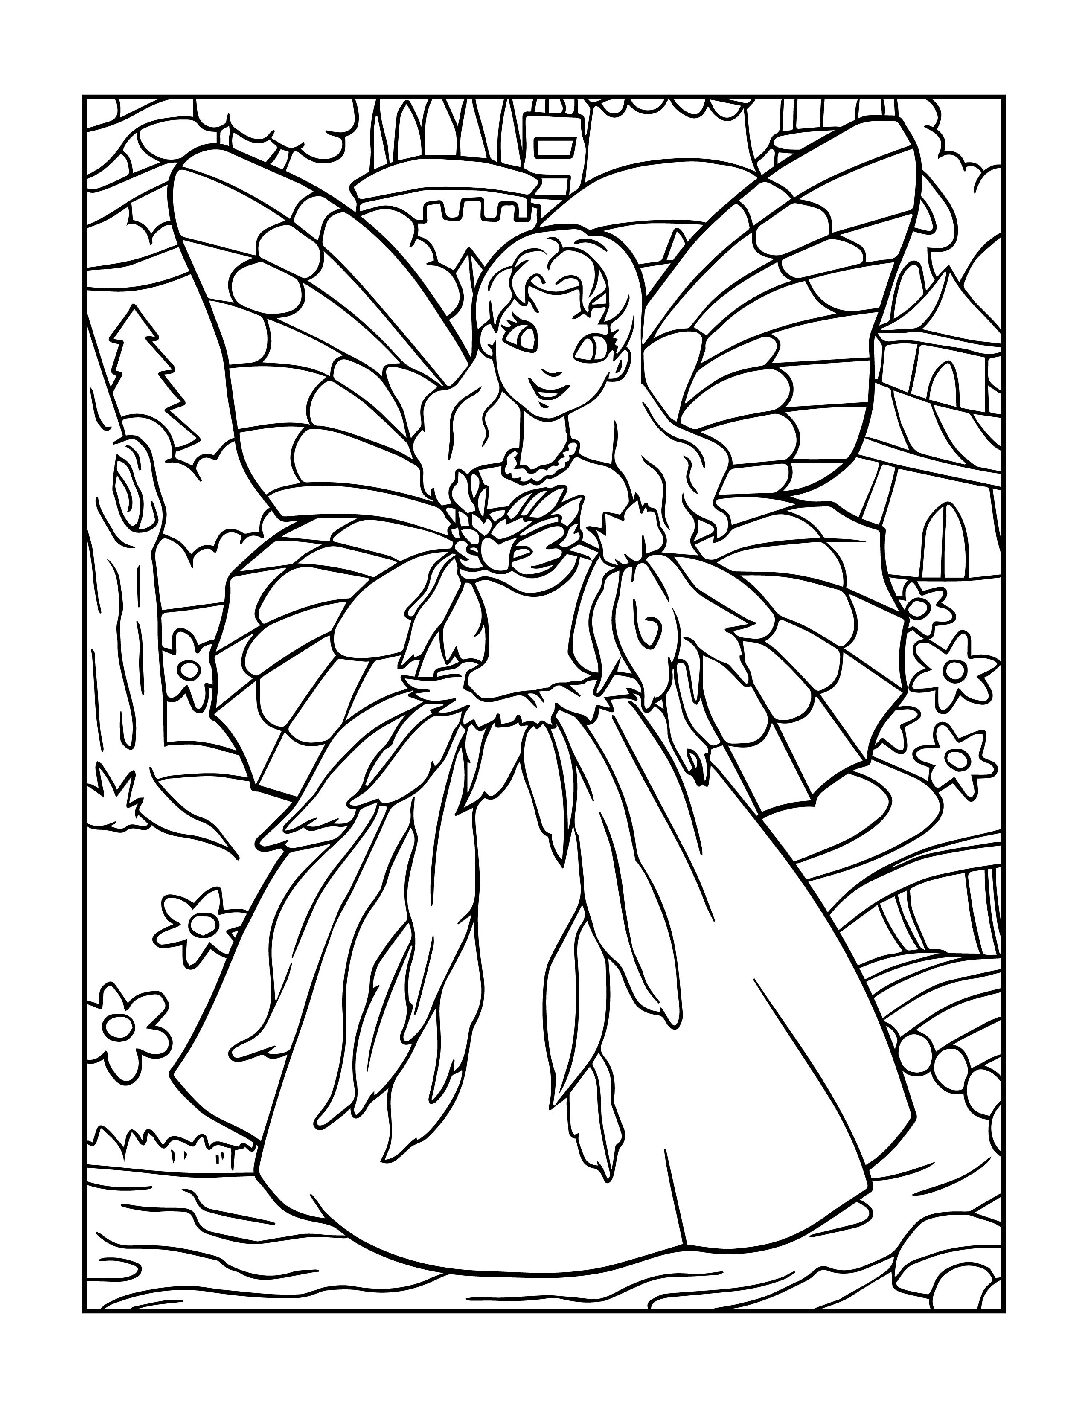 Coloring-Pages-Fairies-11-01-pdf Free Printable Fairy Colouring Pages